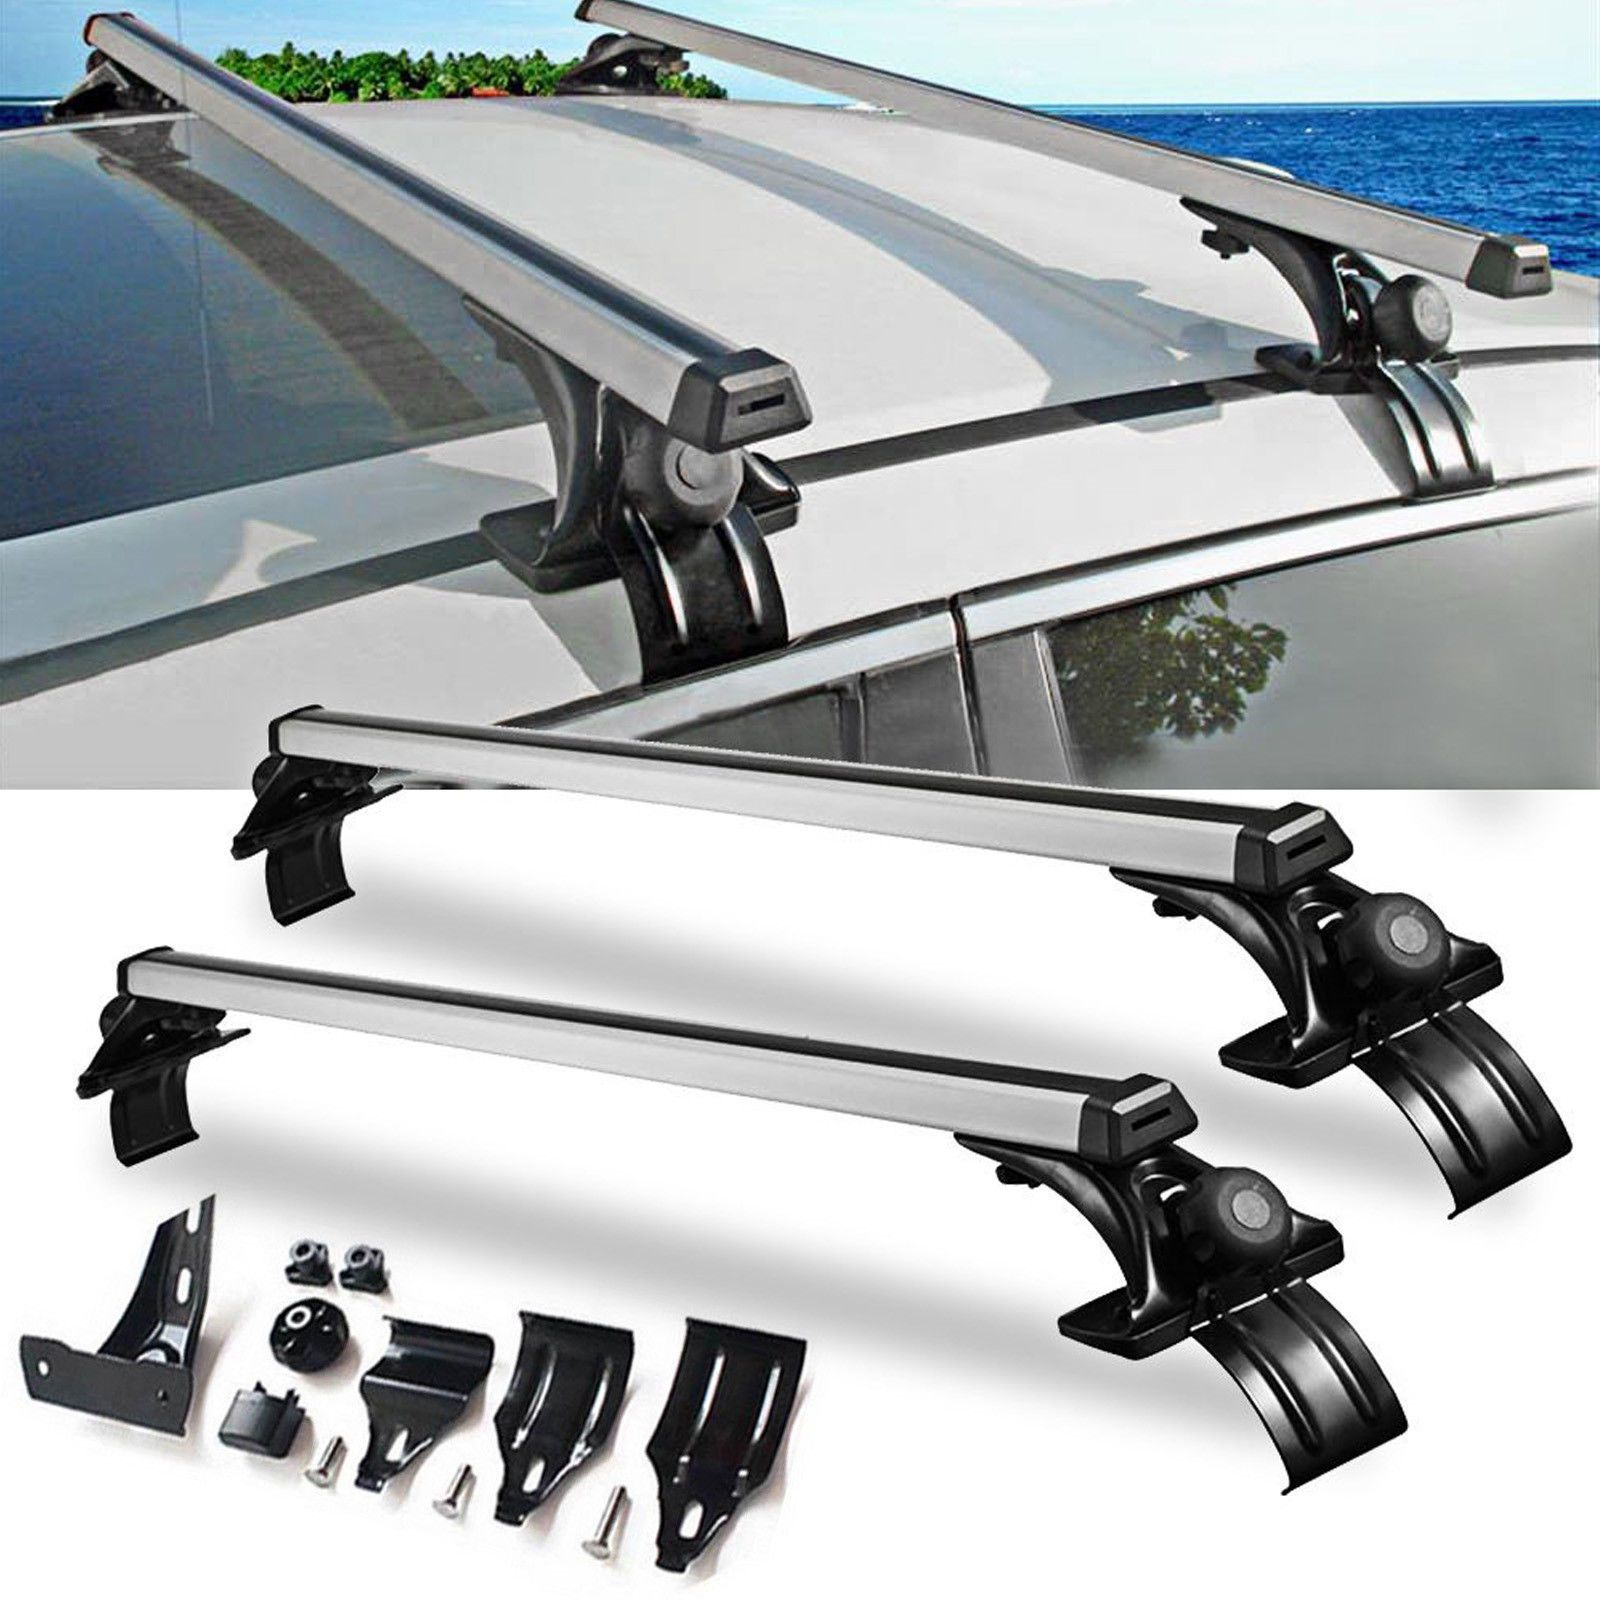 Details About Universal Car Top Roof Cross Bar Luggage Cargo